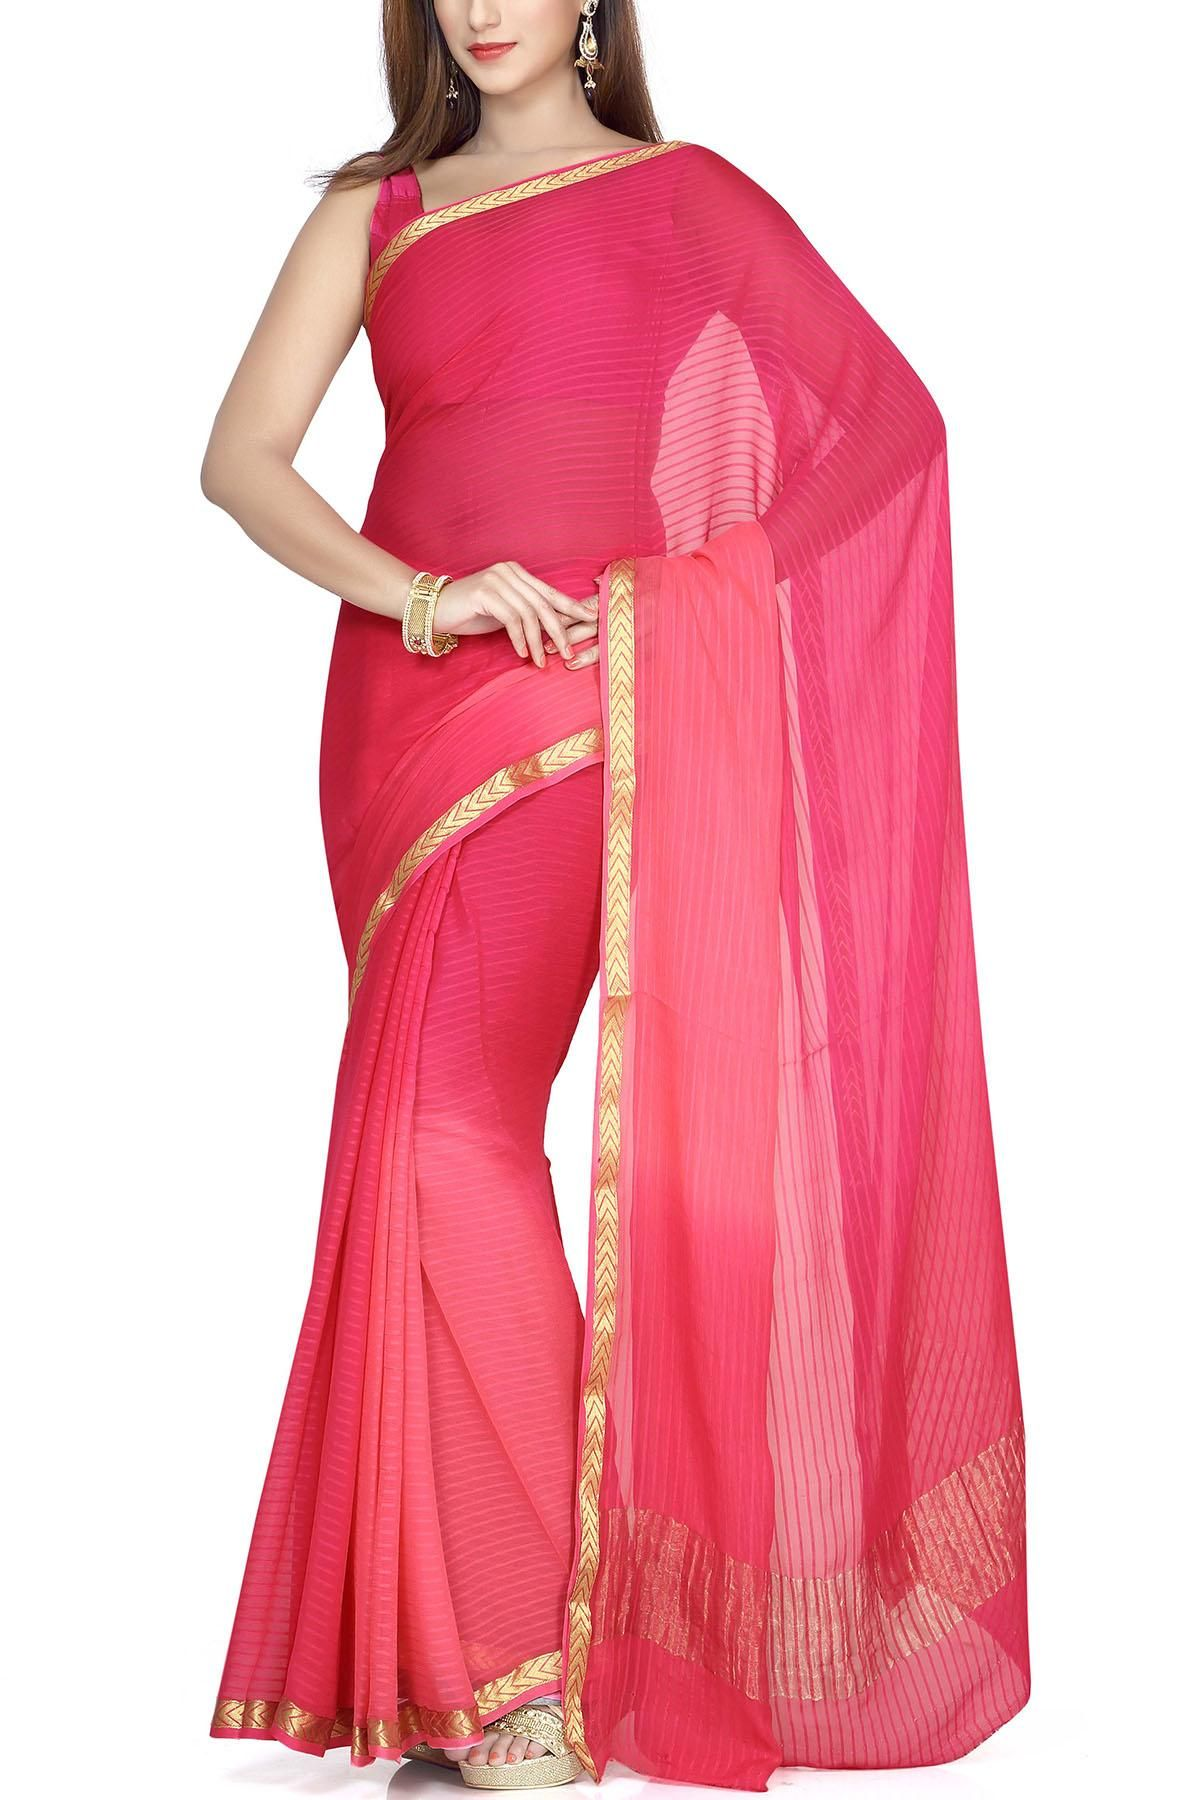 3d4f30d4ae Desire Pink Shaded Pure Chiffon Zari Buti Border Saree | AD- Eastern ...